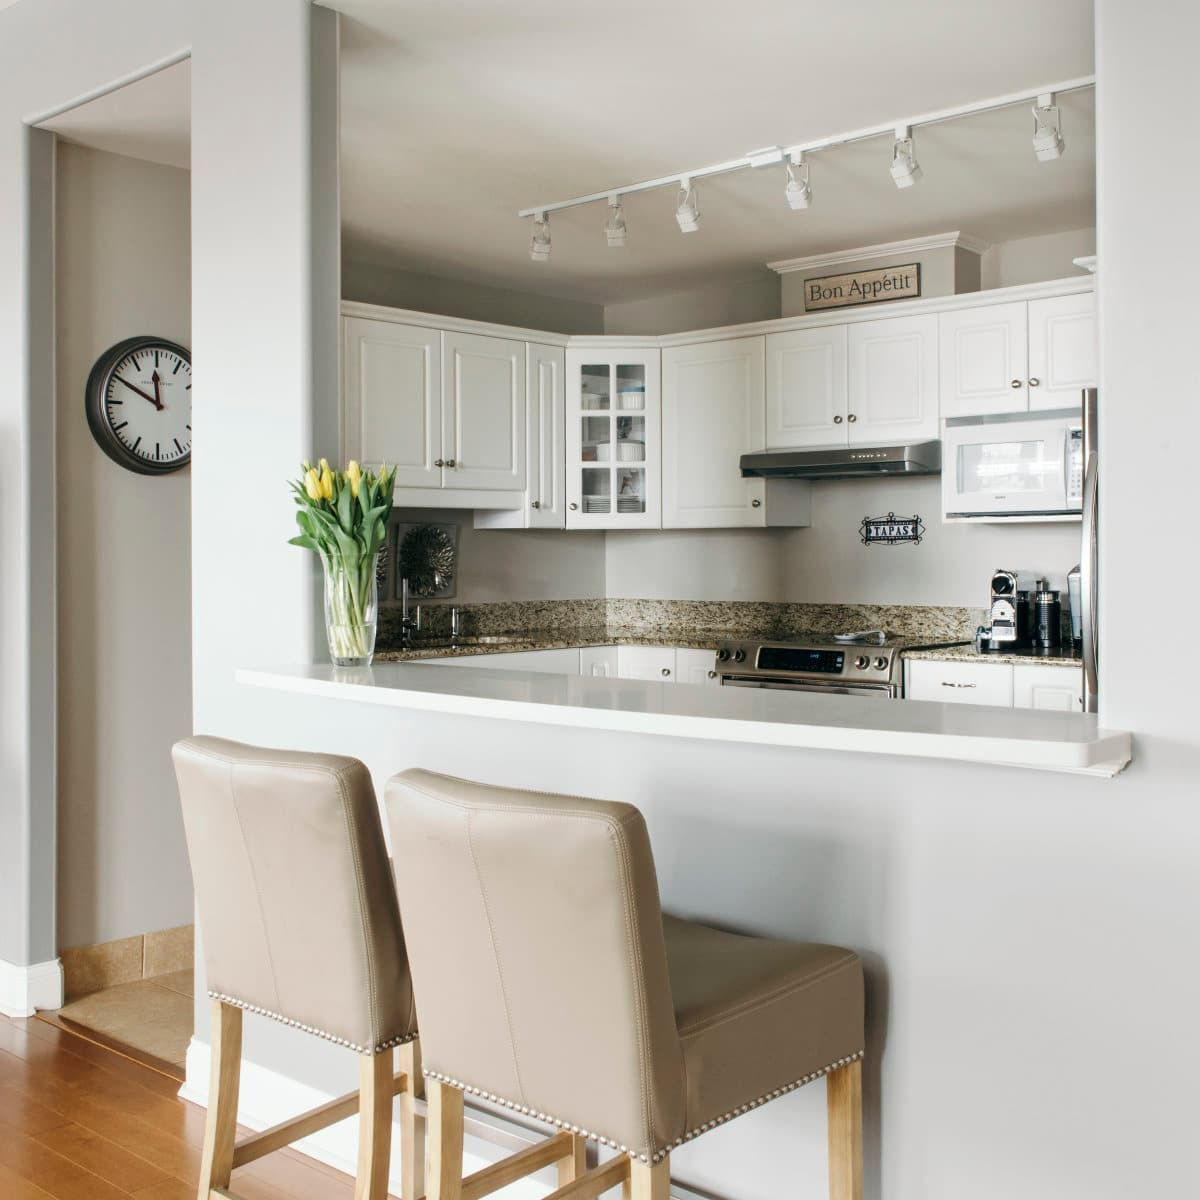 Halifax Condo Upgrades and Beautiful Finishes